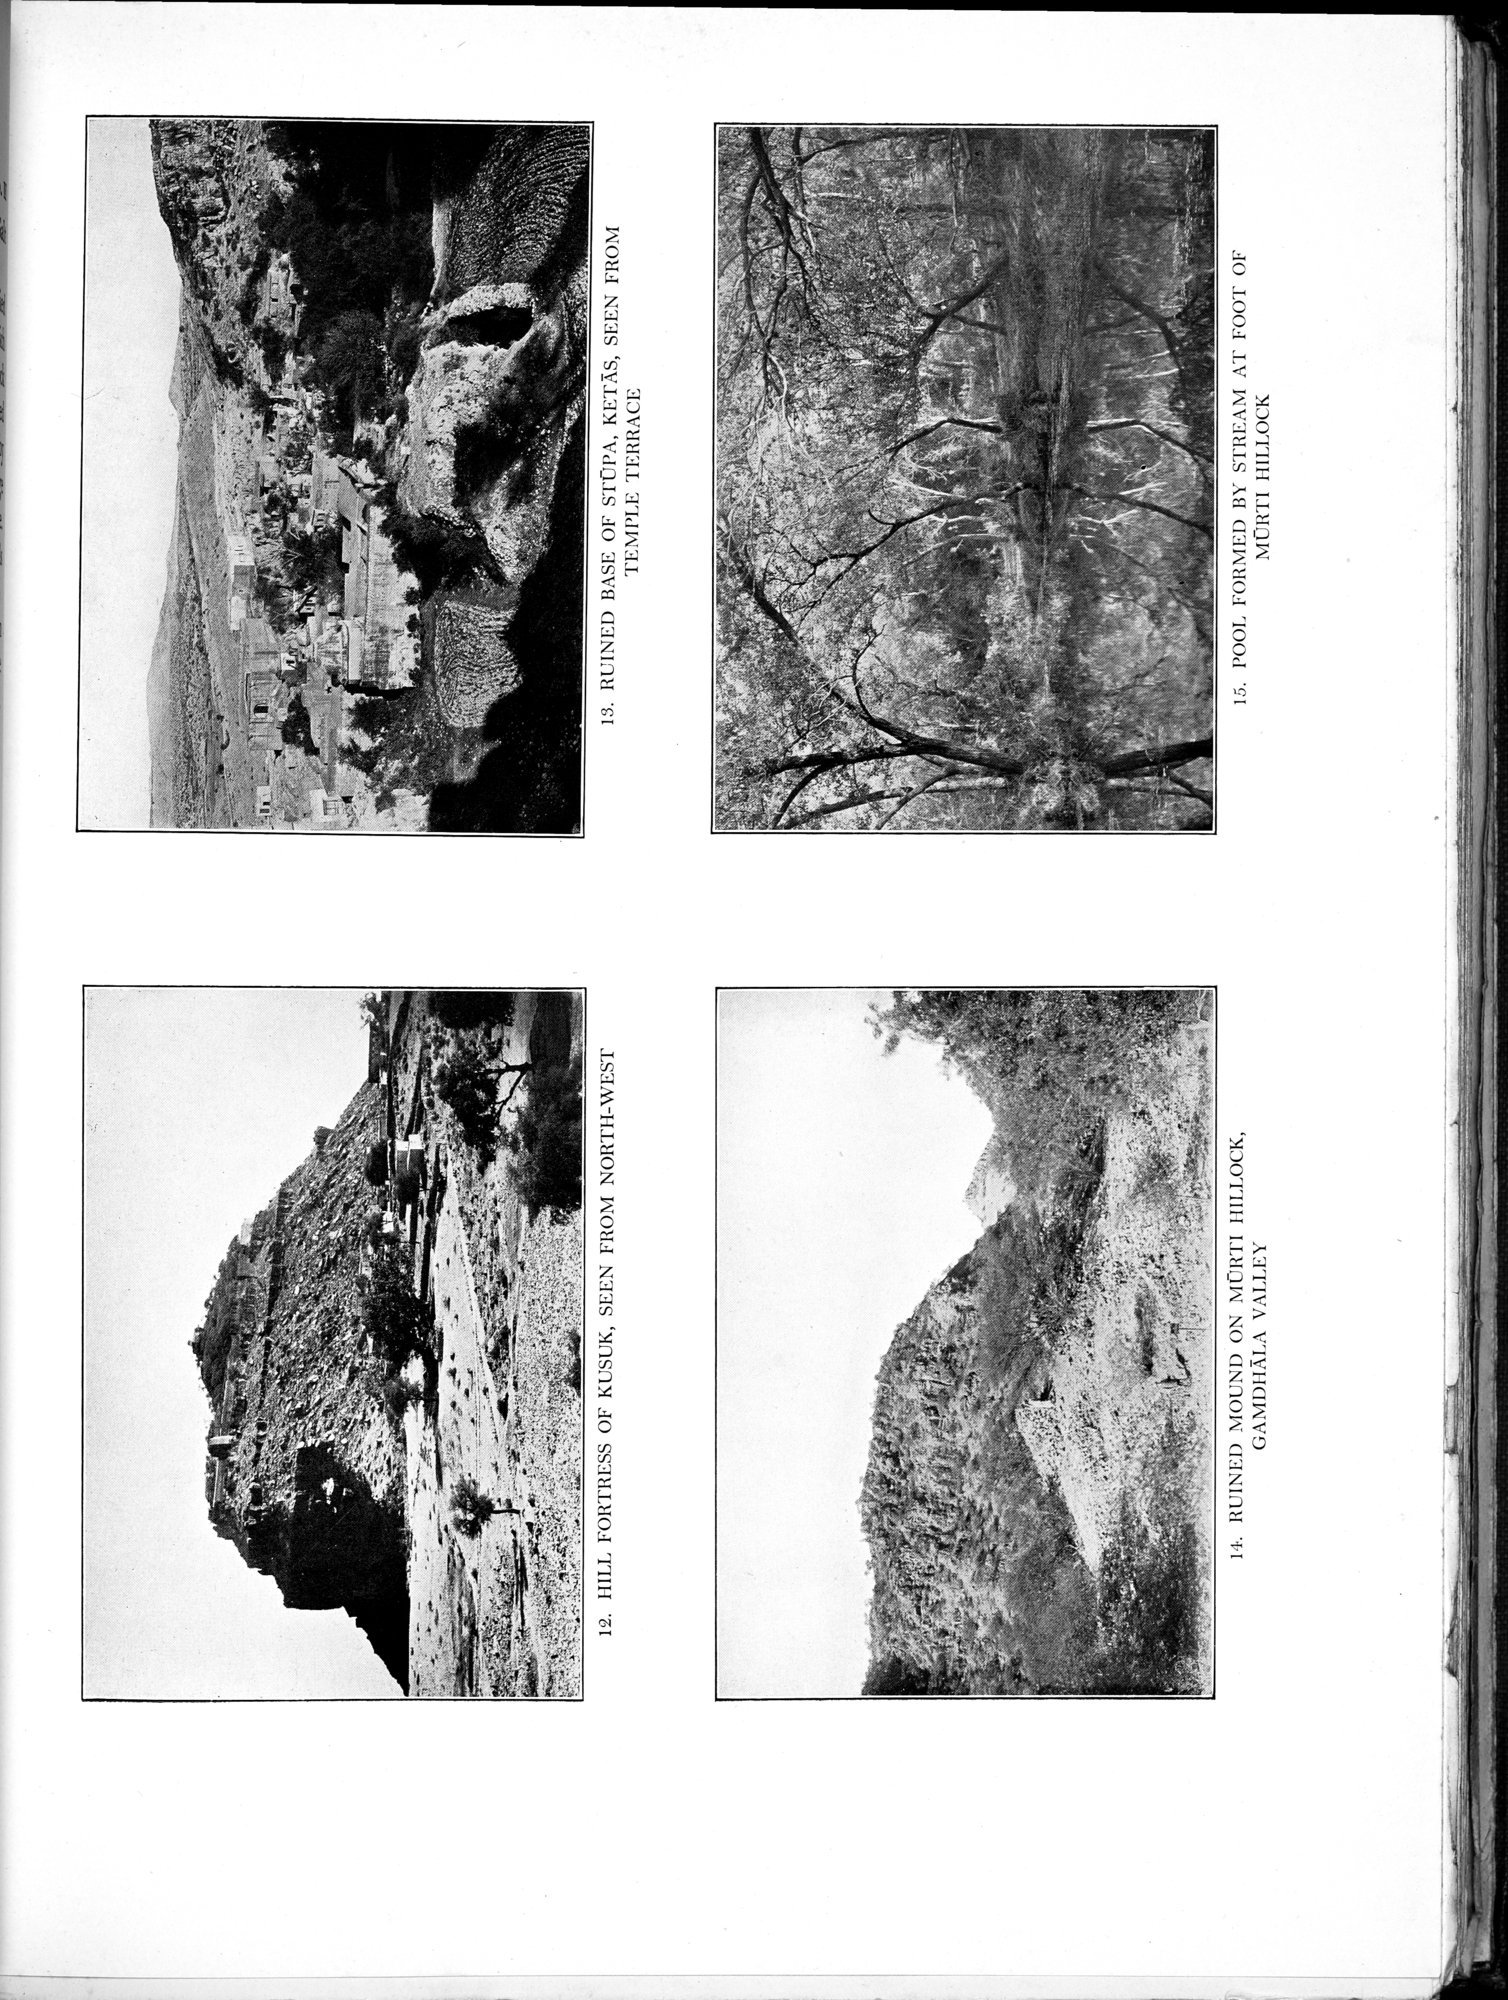 Archaeological Reconnaissances in North-Western India and South-Eastern Īrān : vol.1 / 83 ページ(白黒高解像度画像)